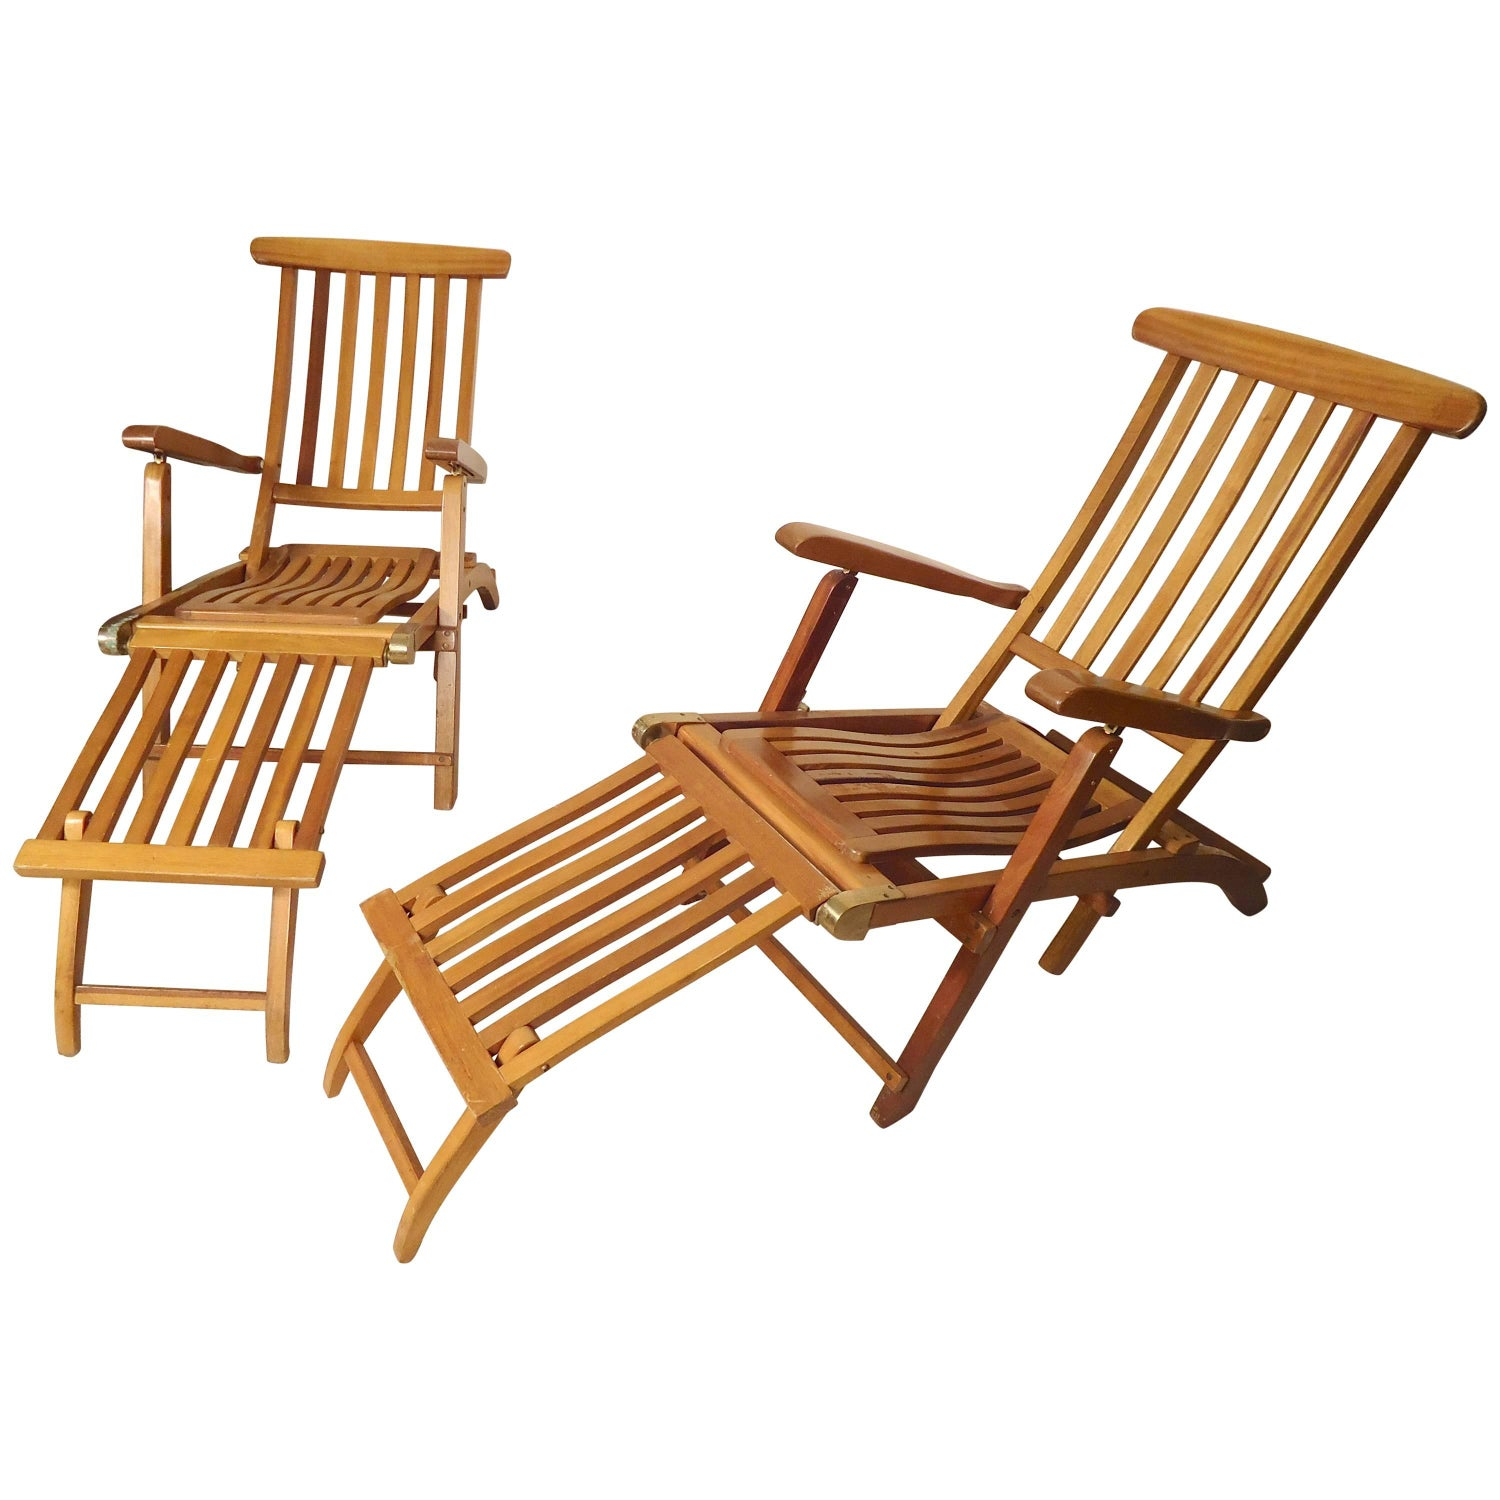 Folding Slat Deck Lounge Chairs For Sale at 1stdibs